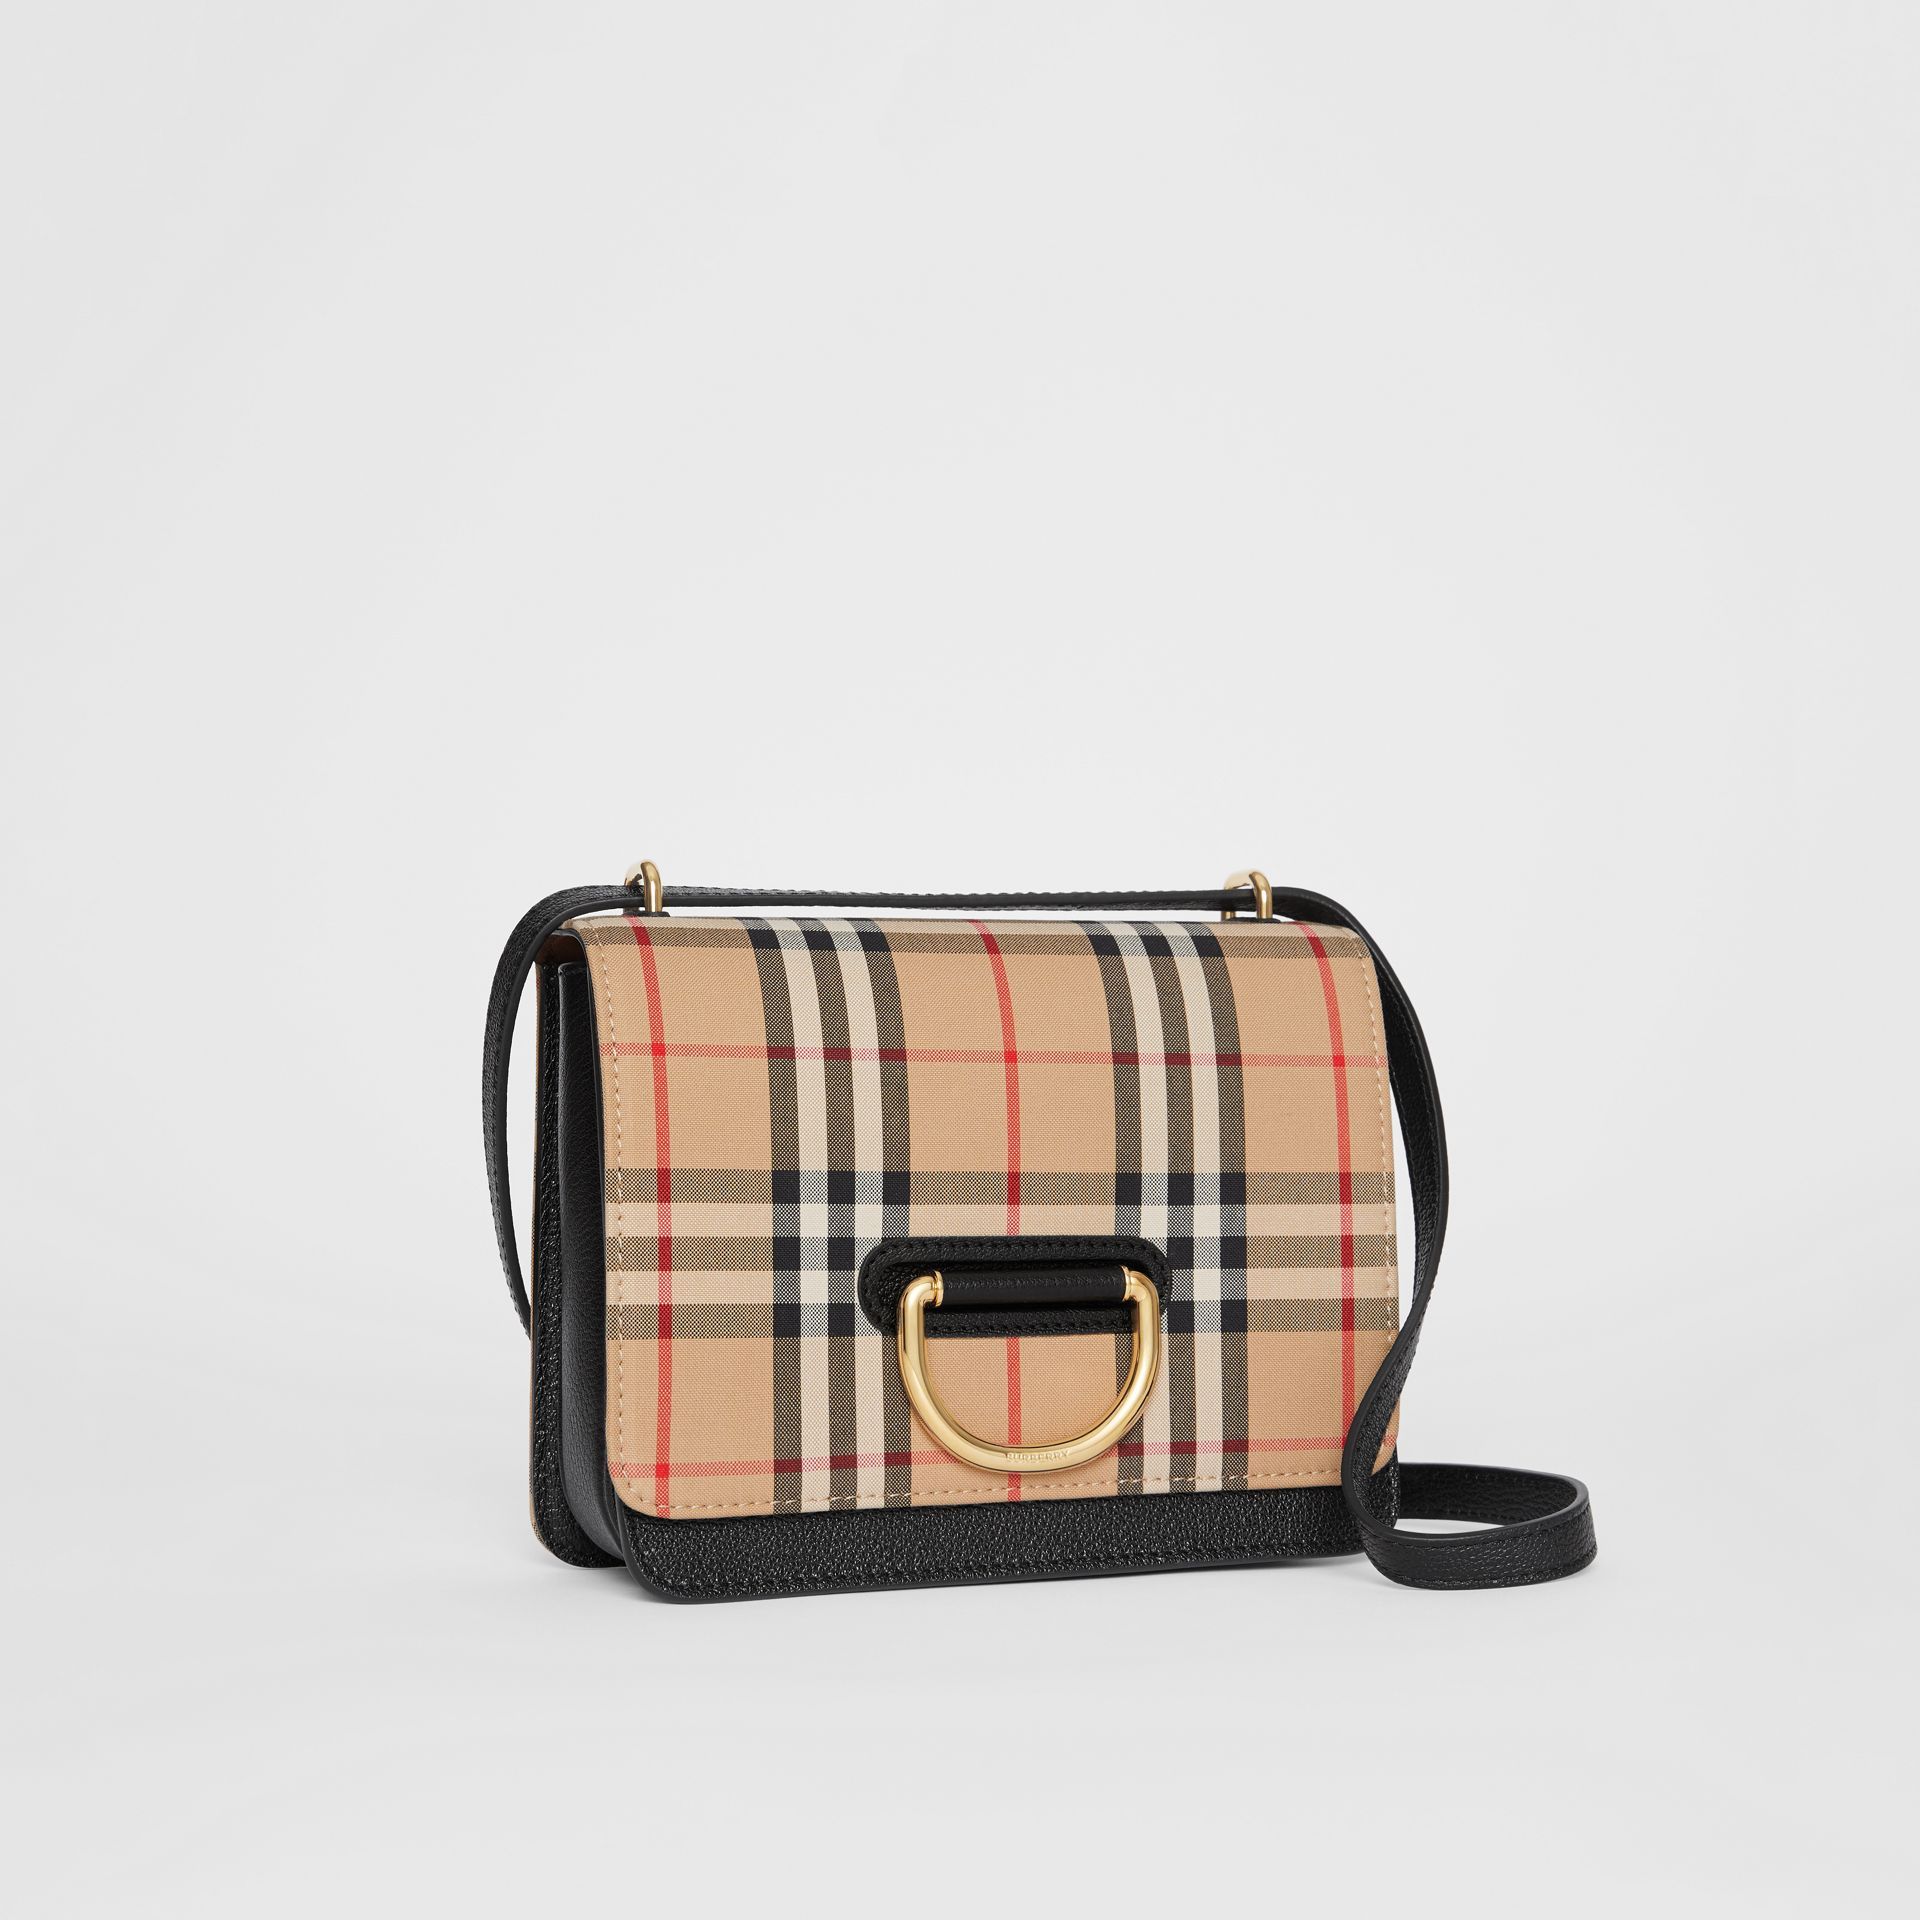 The Small Vintage Check and Leather D-ring Bag in Black - Women | Burberry - gallery image 8